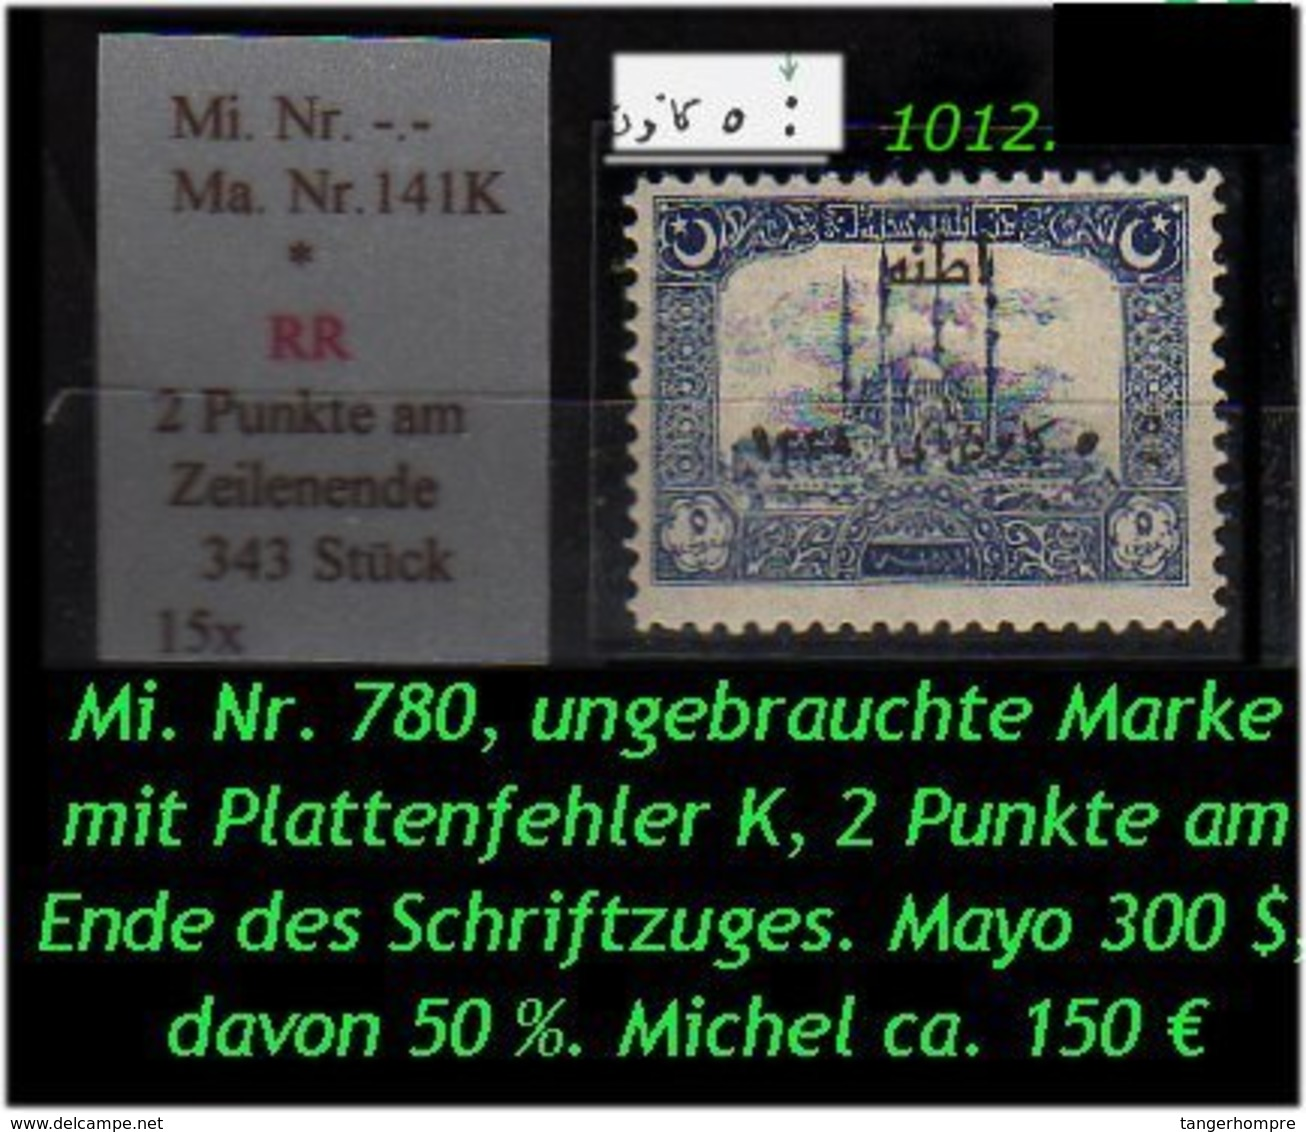 EARLY OTTOMAN SPECIALIZED FOR SPECIALIST, SEE...Mi. Nr. 780 Mit Plattenfehler - Mayo 141 K - Nuevos